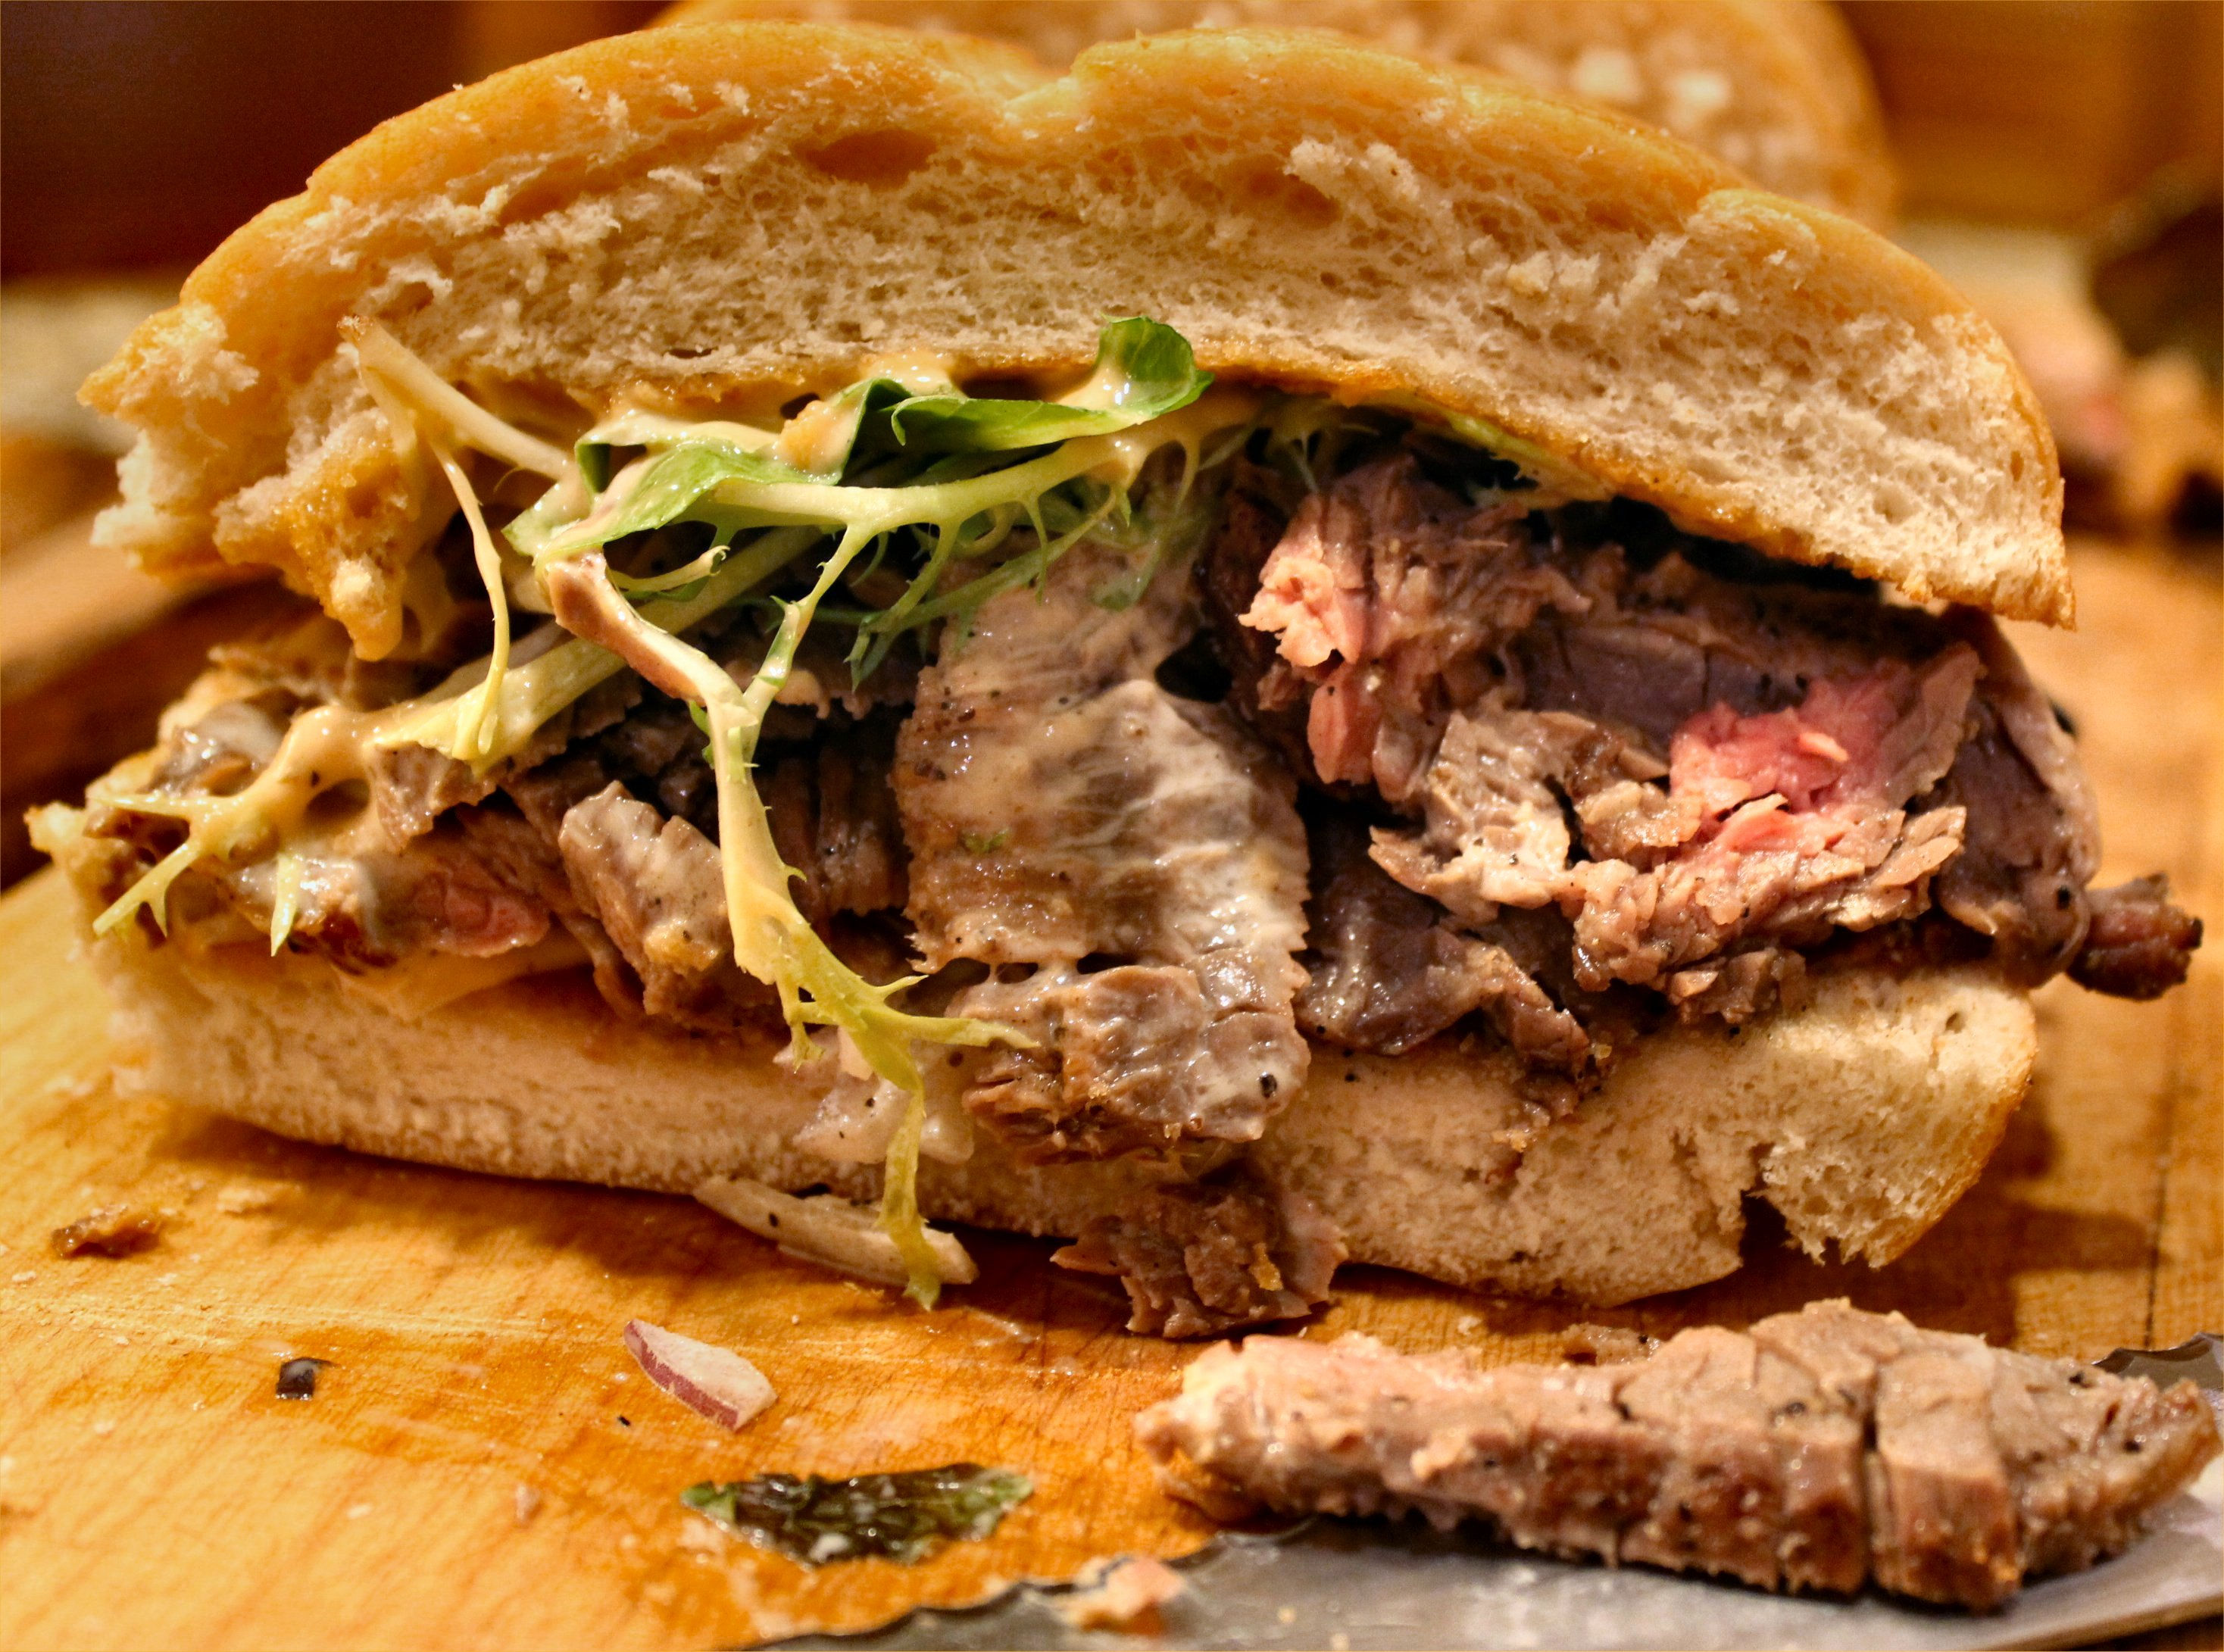 Flank Steak Sandwich ( insidenanabreadshead.files.wordpress.com )